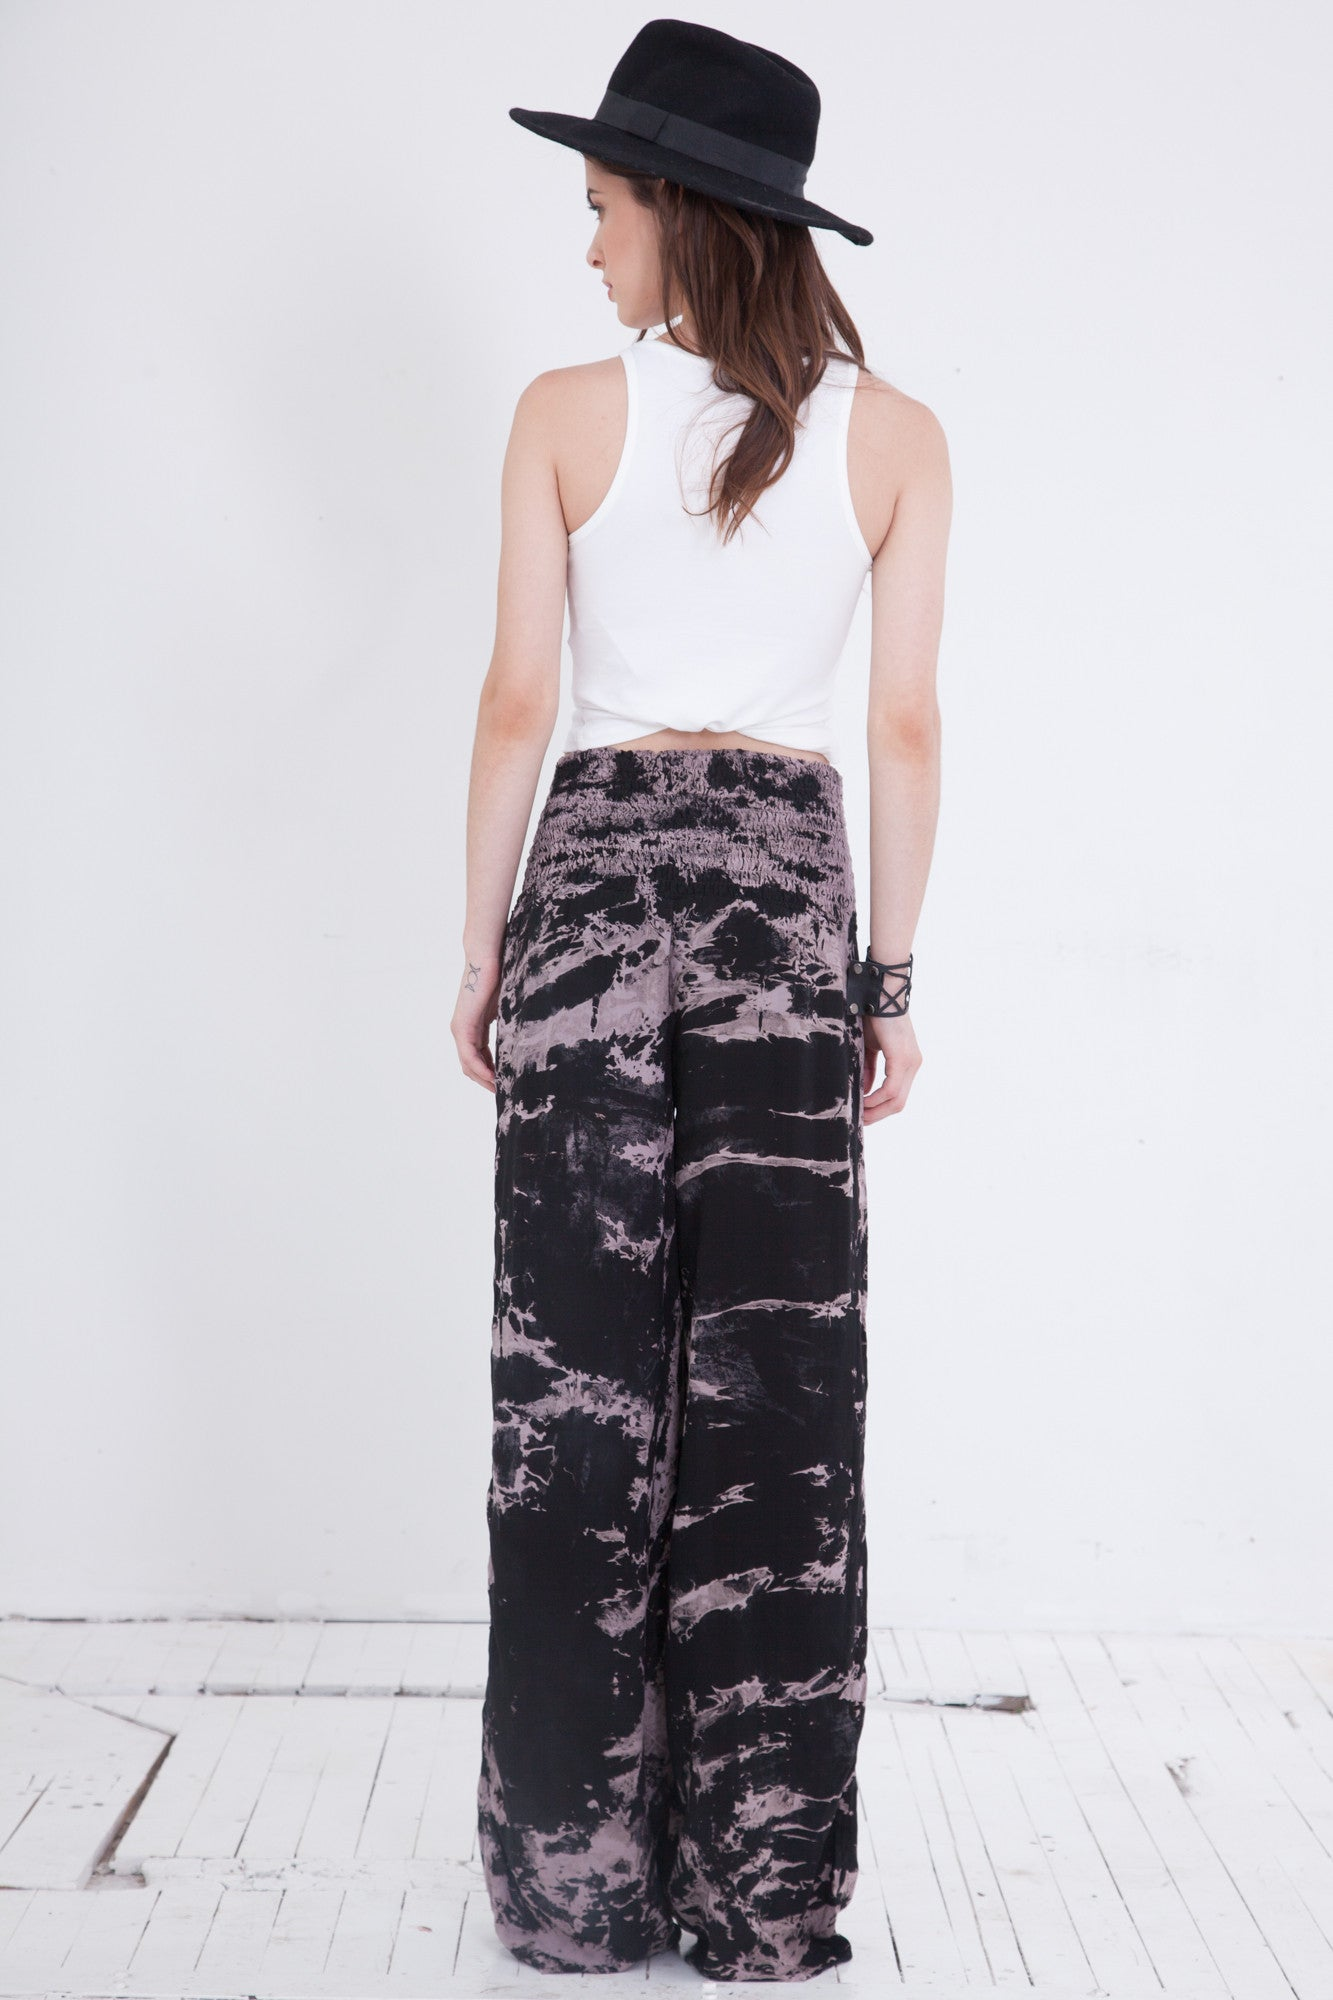 Black and White Tie Dye Palazzo Pants